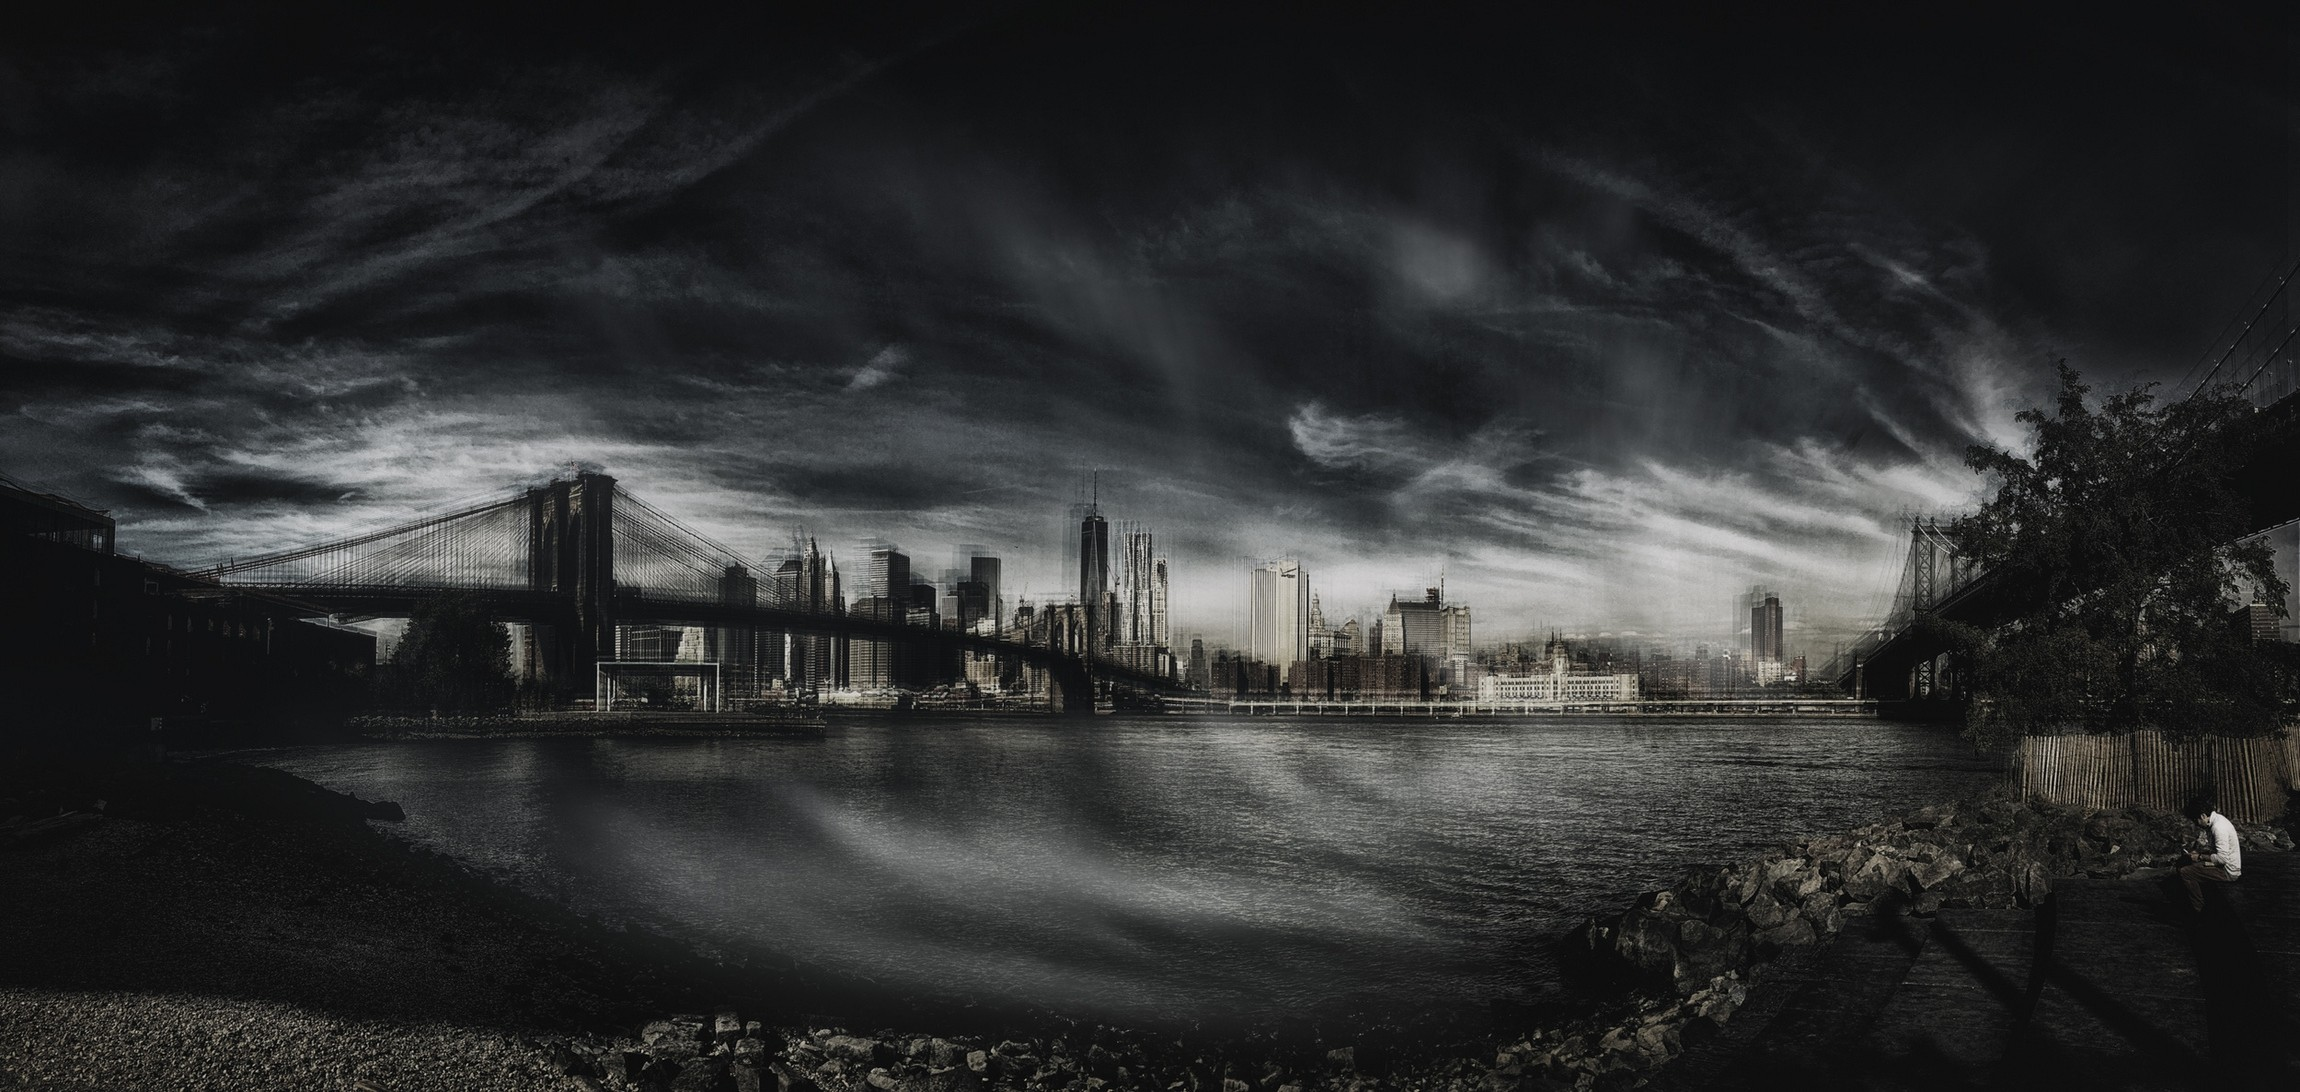 General 2300x1092 landscape photography panoramas New York City Brooklyn Bridge river monochrome skyscraper clouds architecture